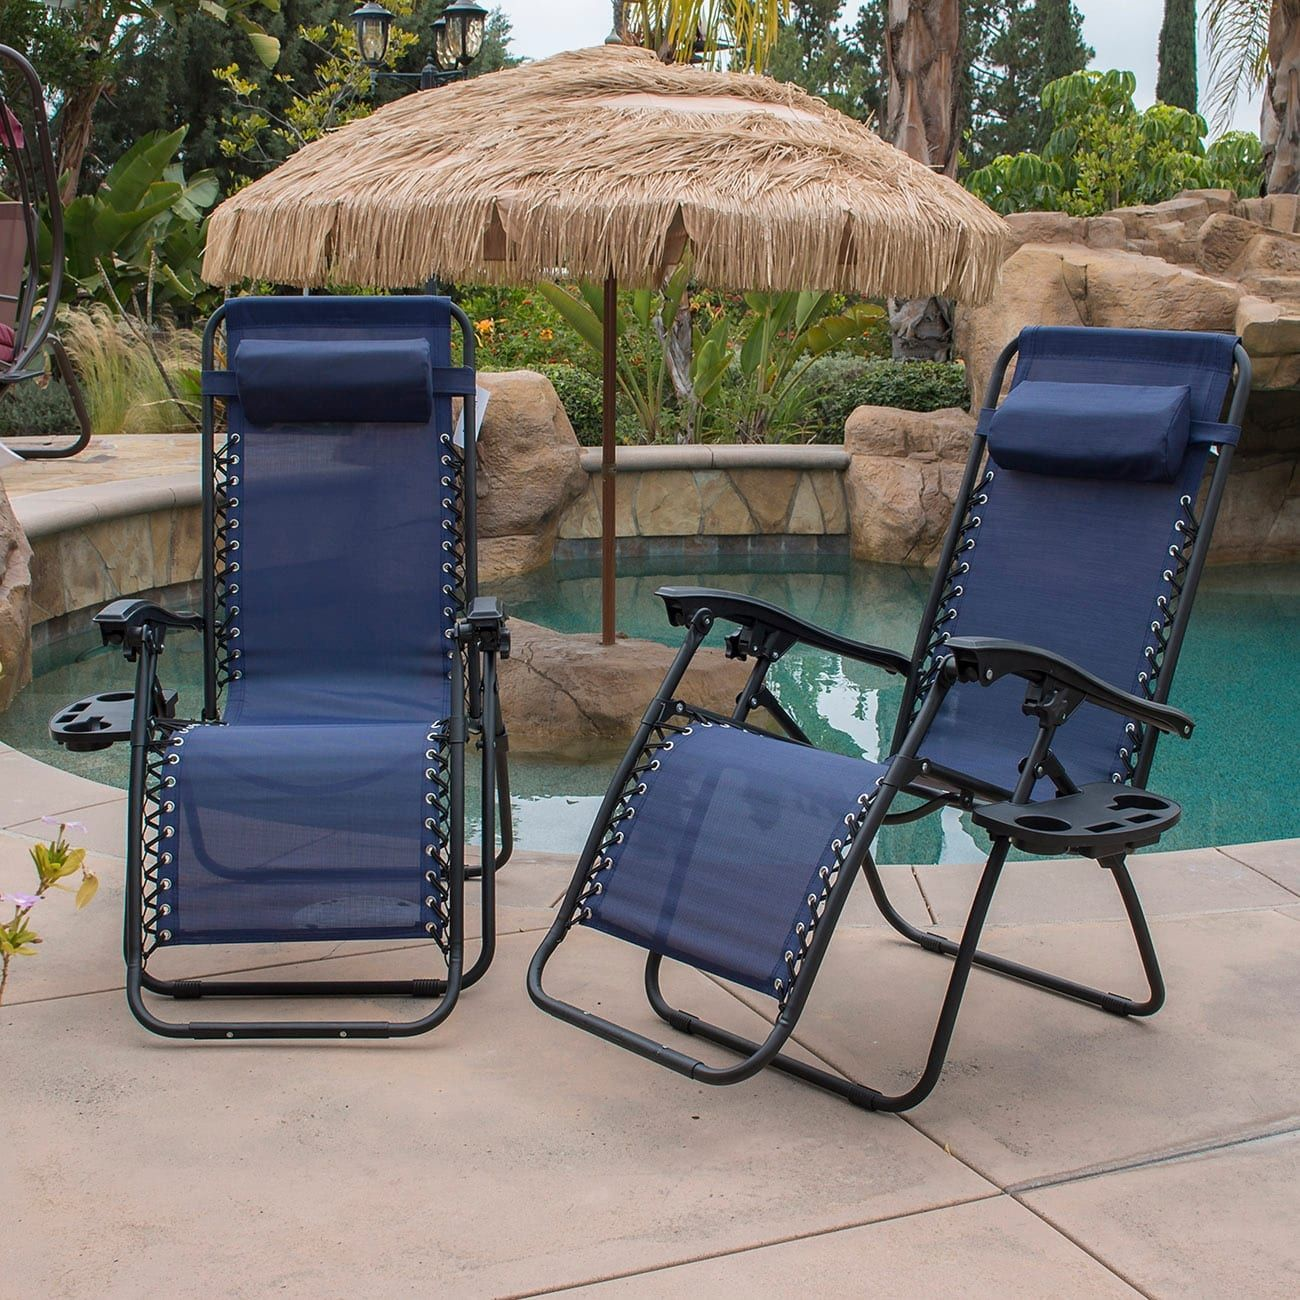 belleze zero gravity chair recliner patio pool chair cup holder rh pinterest co uk